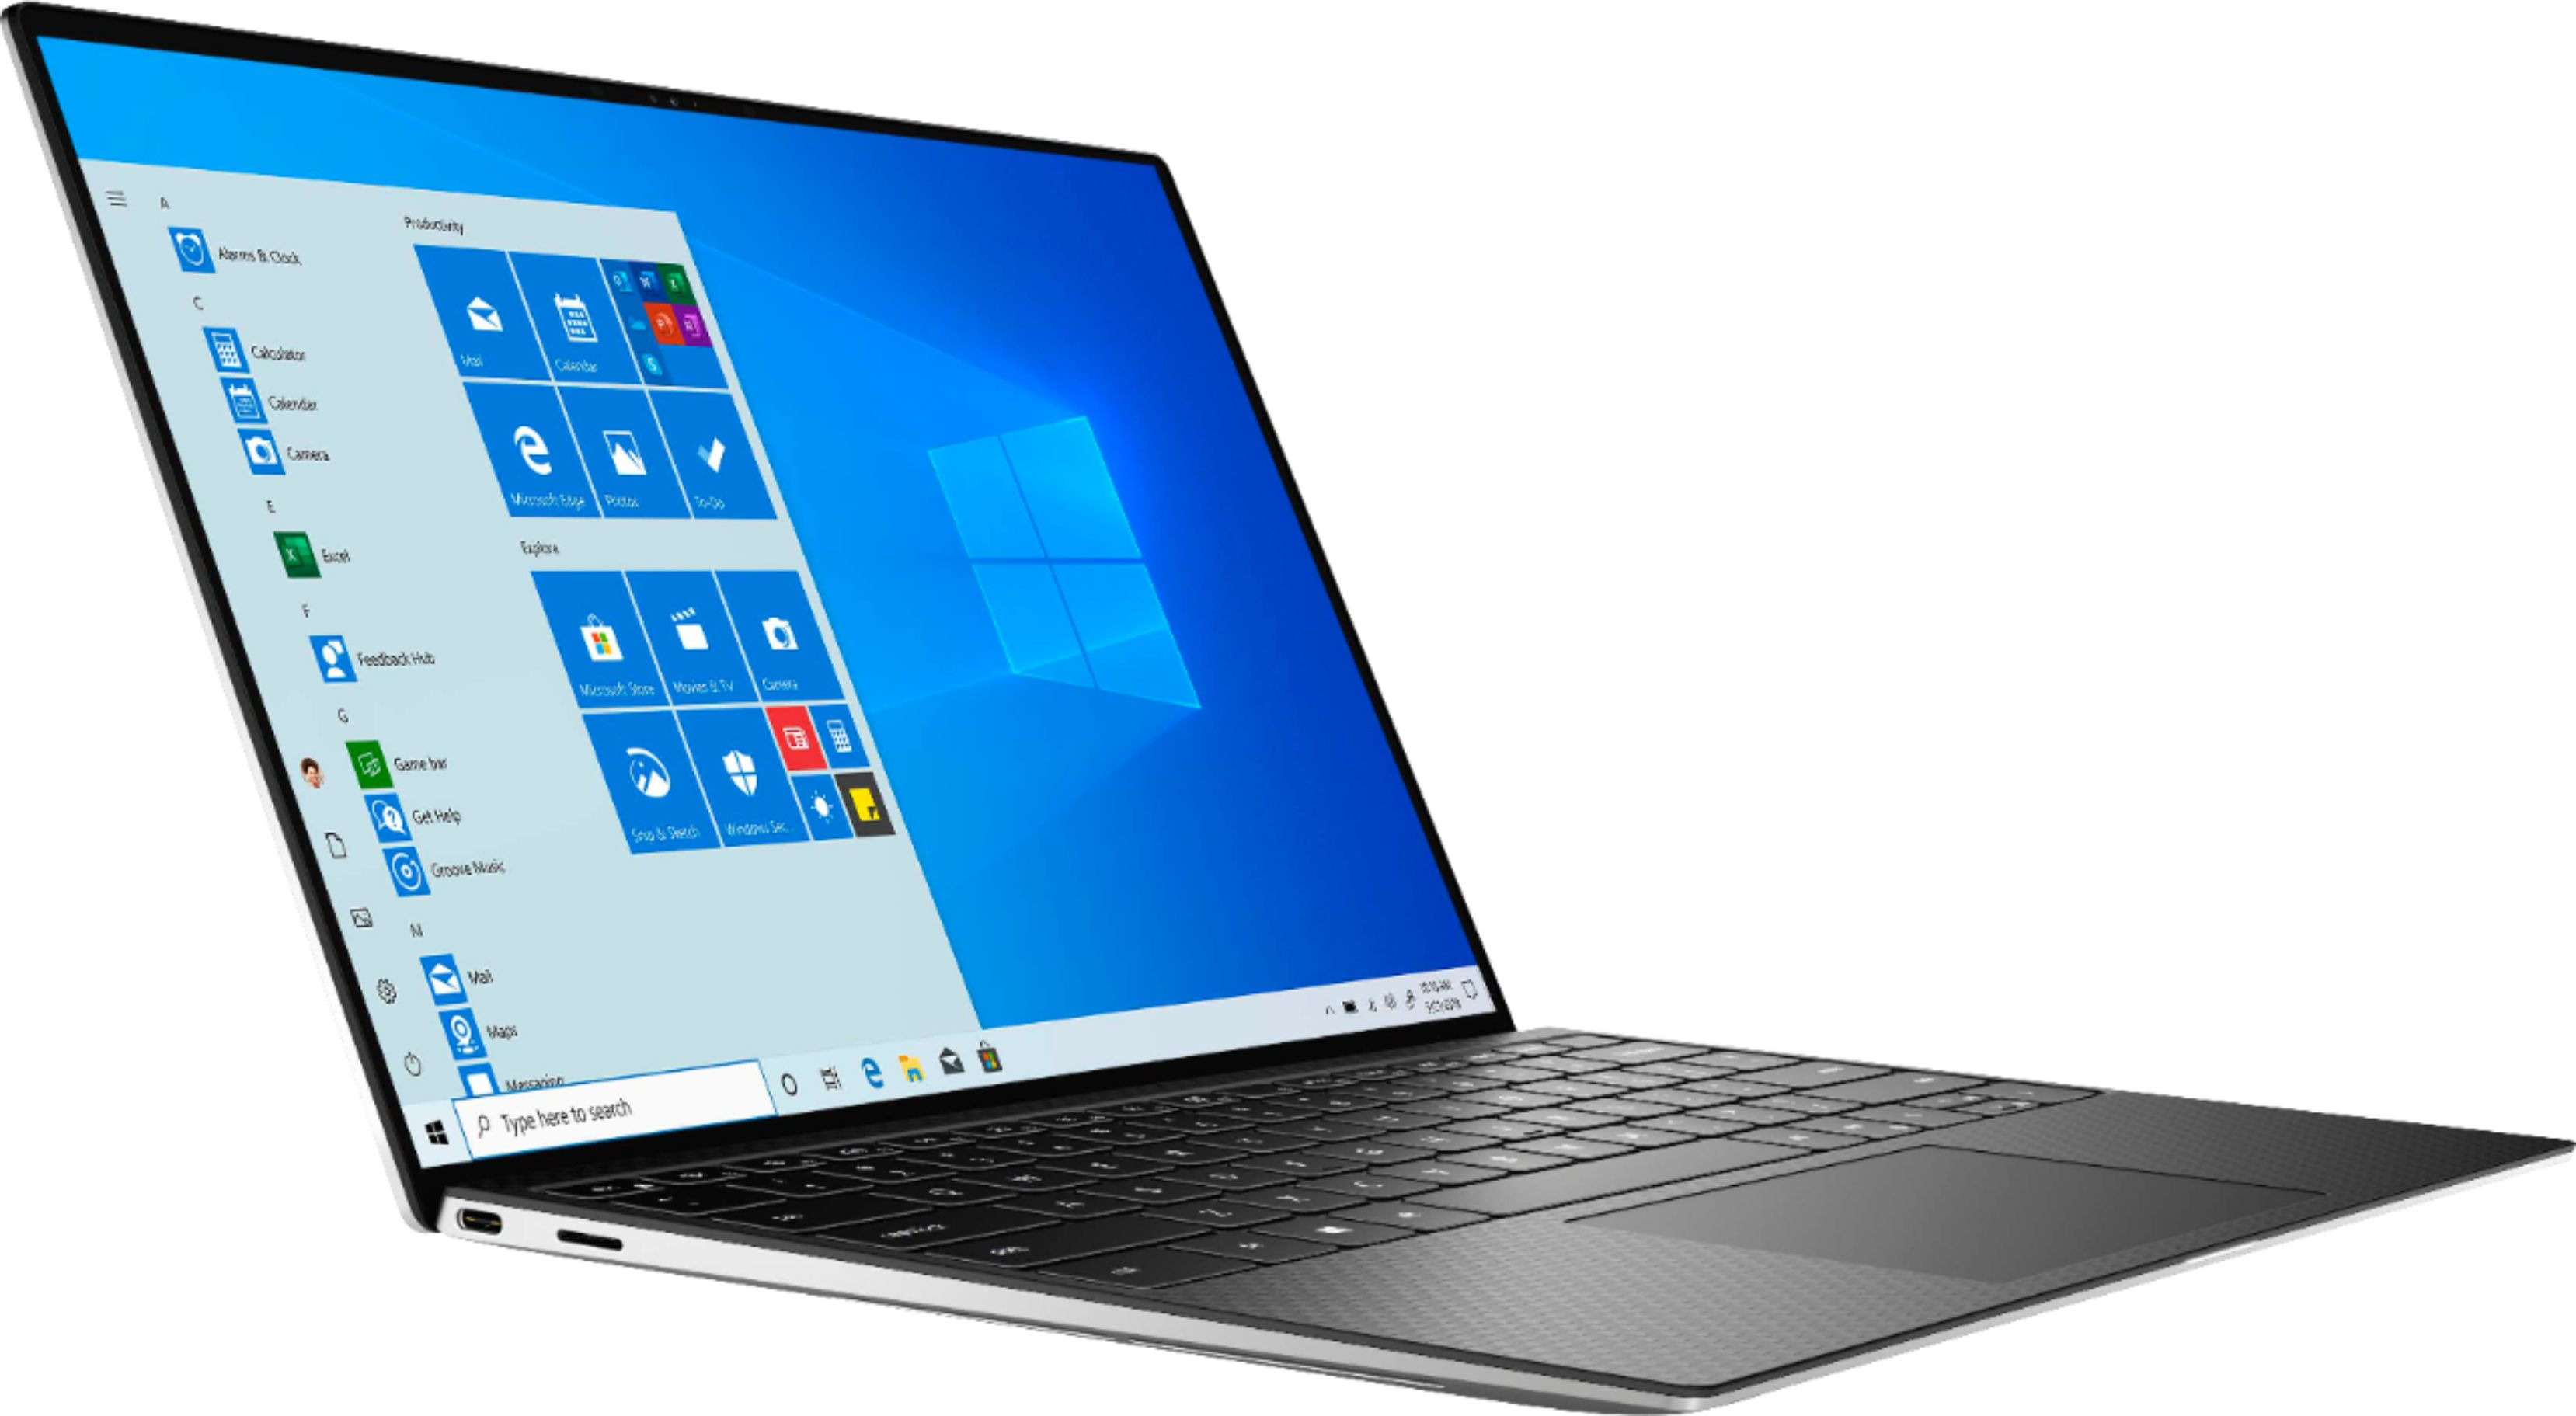 """Angle Zoom. Dell - XPS 13.4"""" FHD+ Touch Laptop - Engineered for Mobile Performance - Intel Core i7 - 8GB Memory - 512GB SSD - Platinum Silver."""